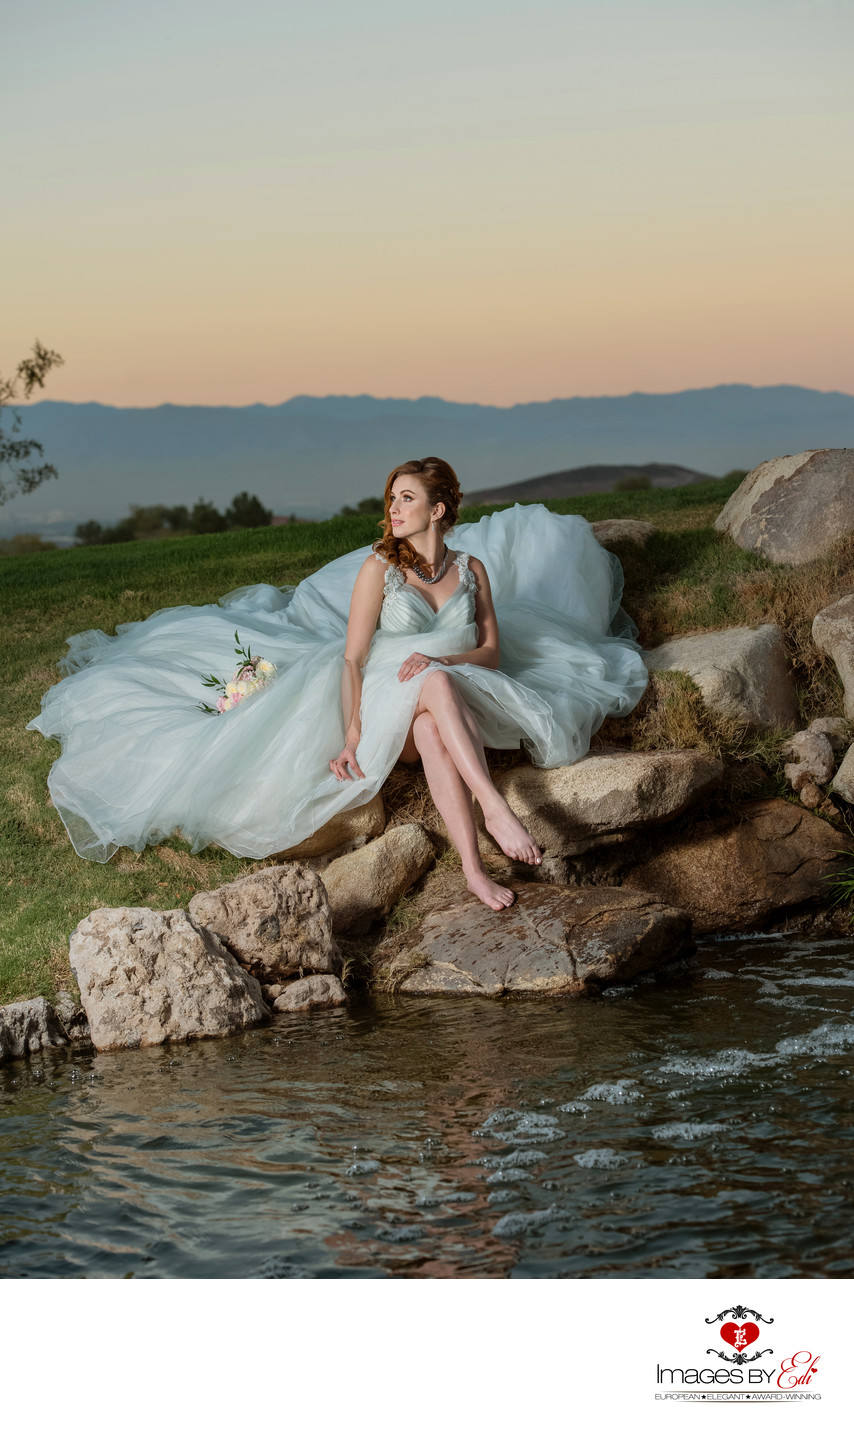 Anthem Country Club Las Vegas Wedding Photographer | Wedding Photo of Bride Sitting by the Lake | Spectacular Bride Magazine Wedding Photo | Images by EDI